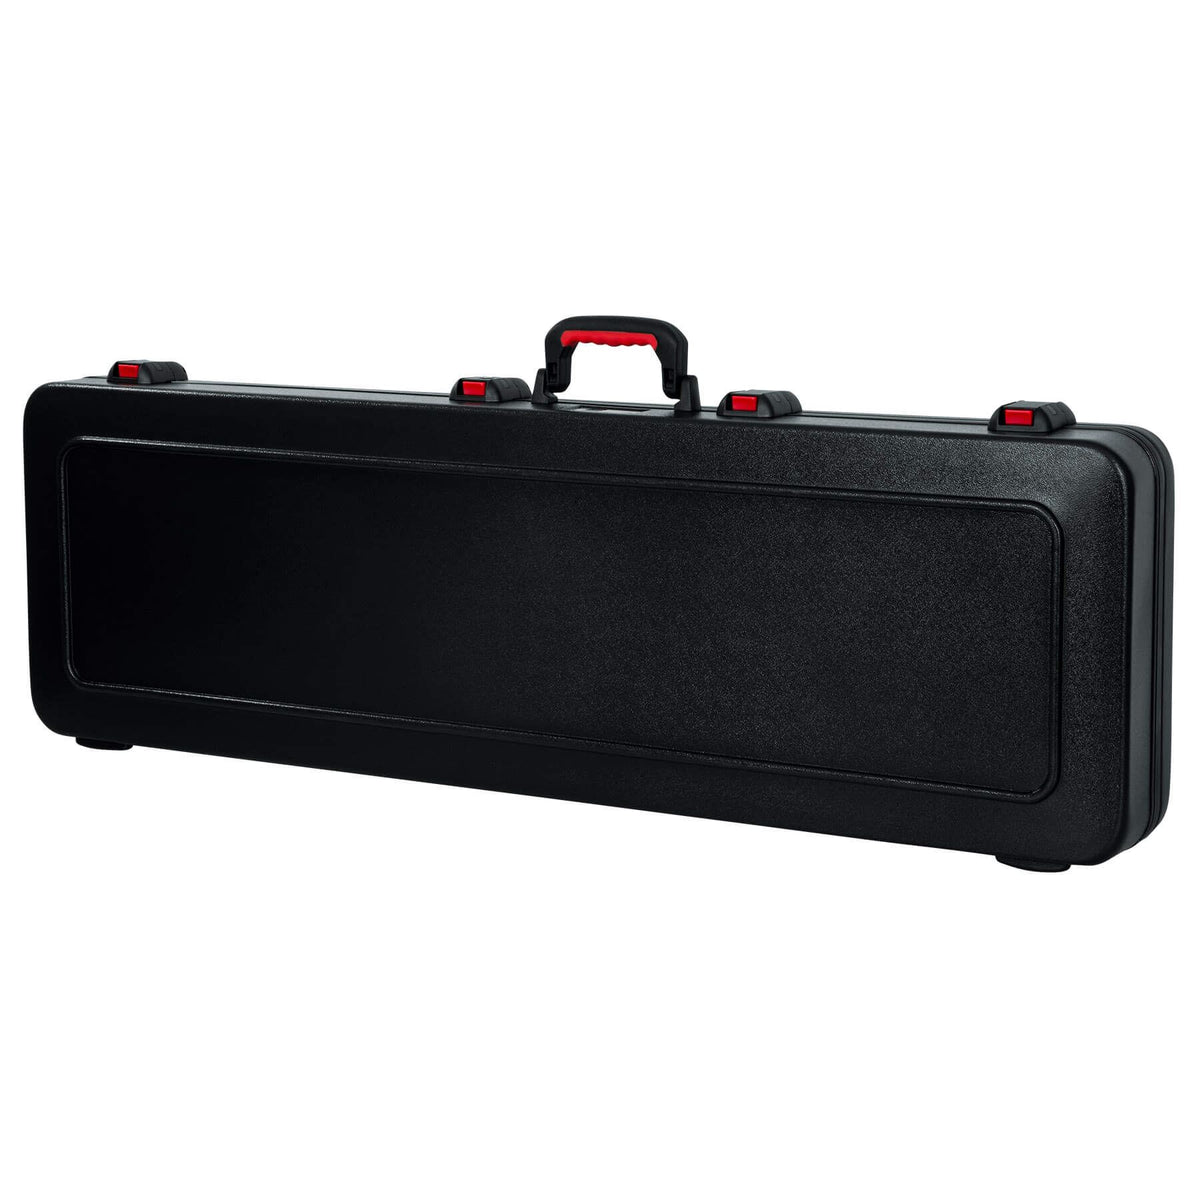 Gator ATA Bass Guitar Case fits Fender American Standard Jazz Bass V